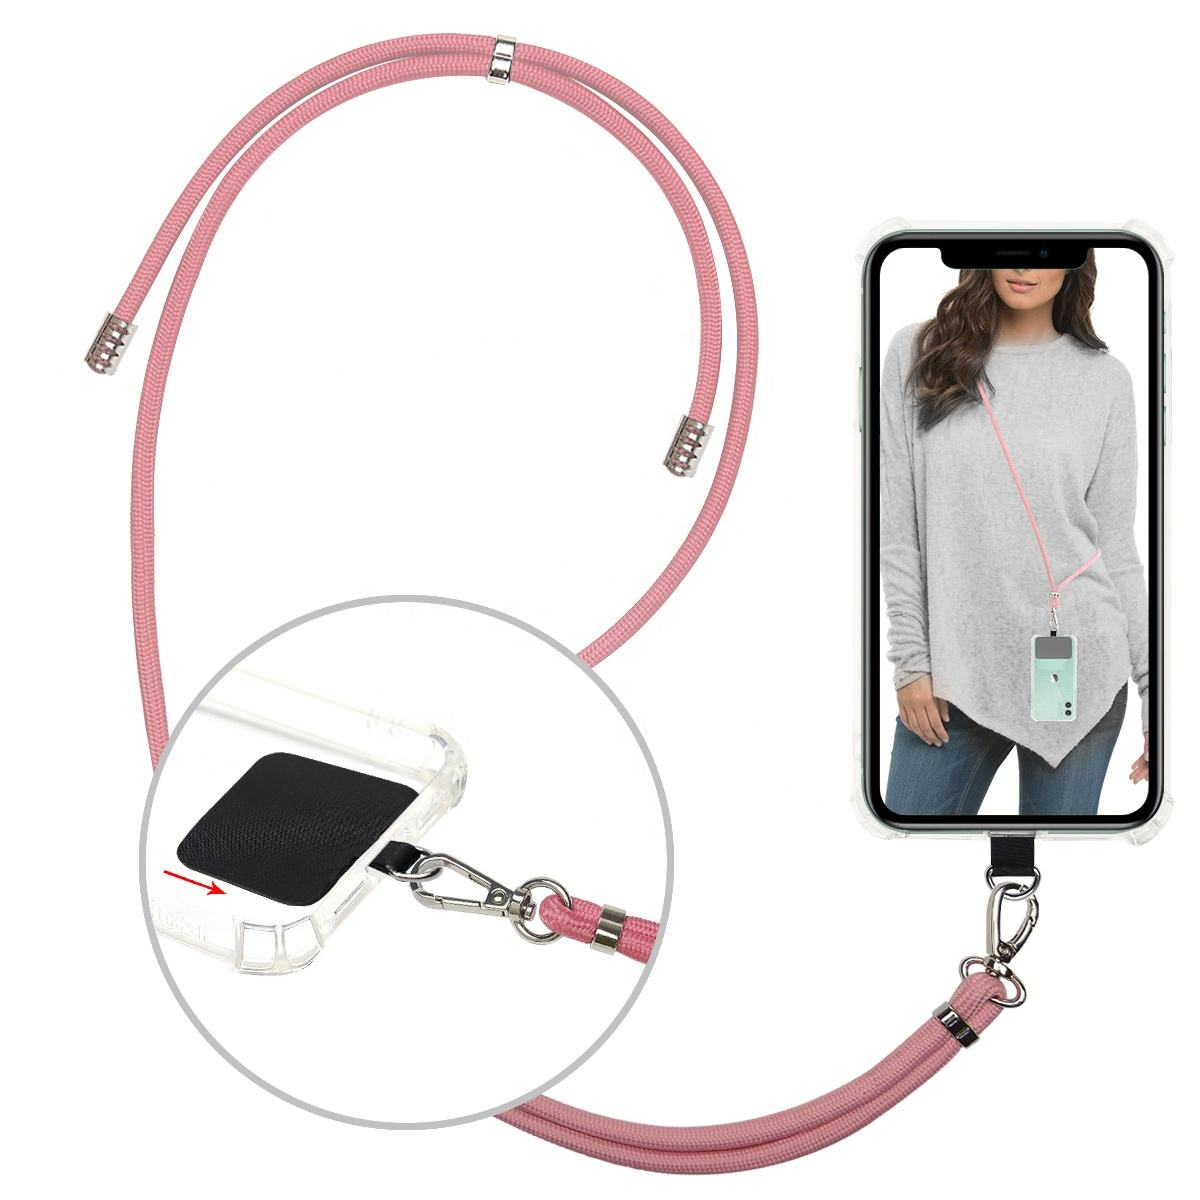 Universal Crossbody Phone Lanyard nylon straps with buckle, Adjustable Nylon Neck Strap Necklace Phone Rope for Smartphone